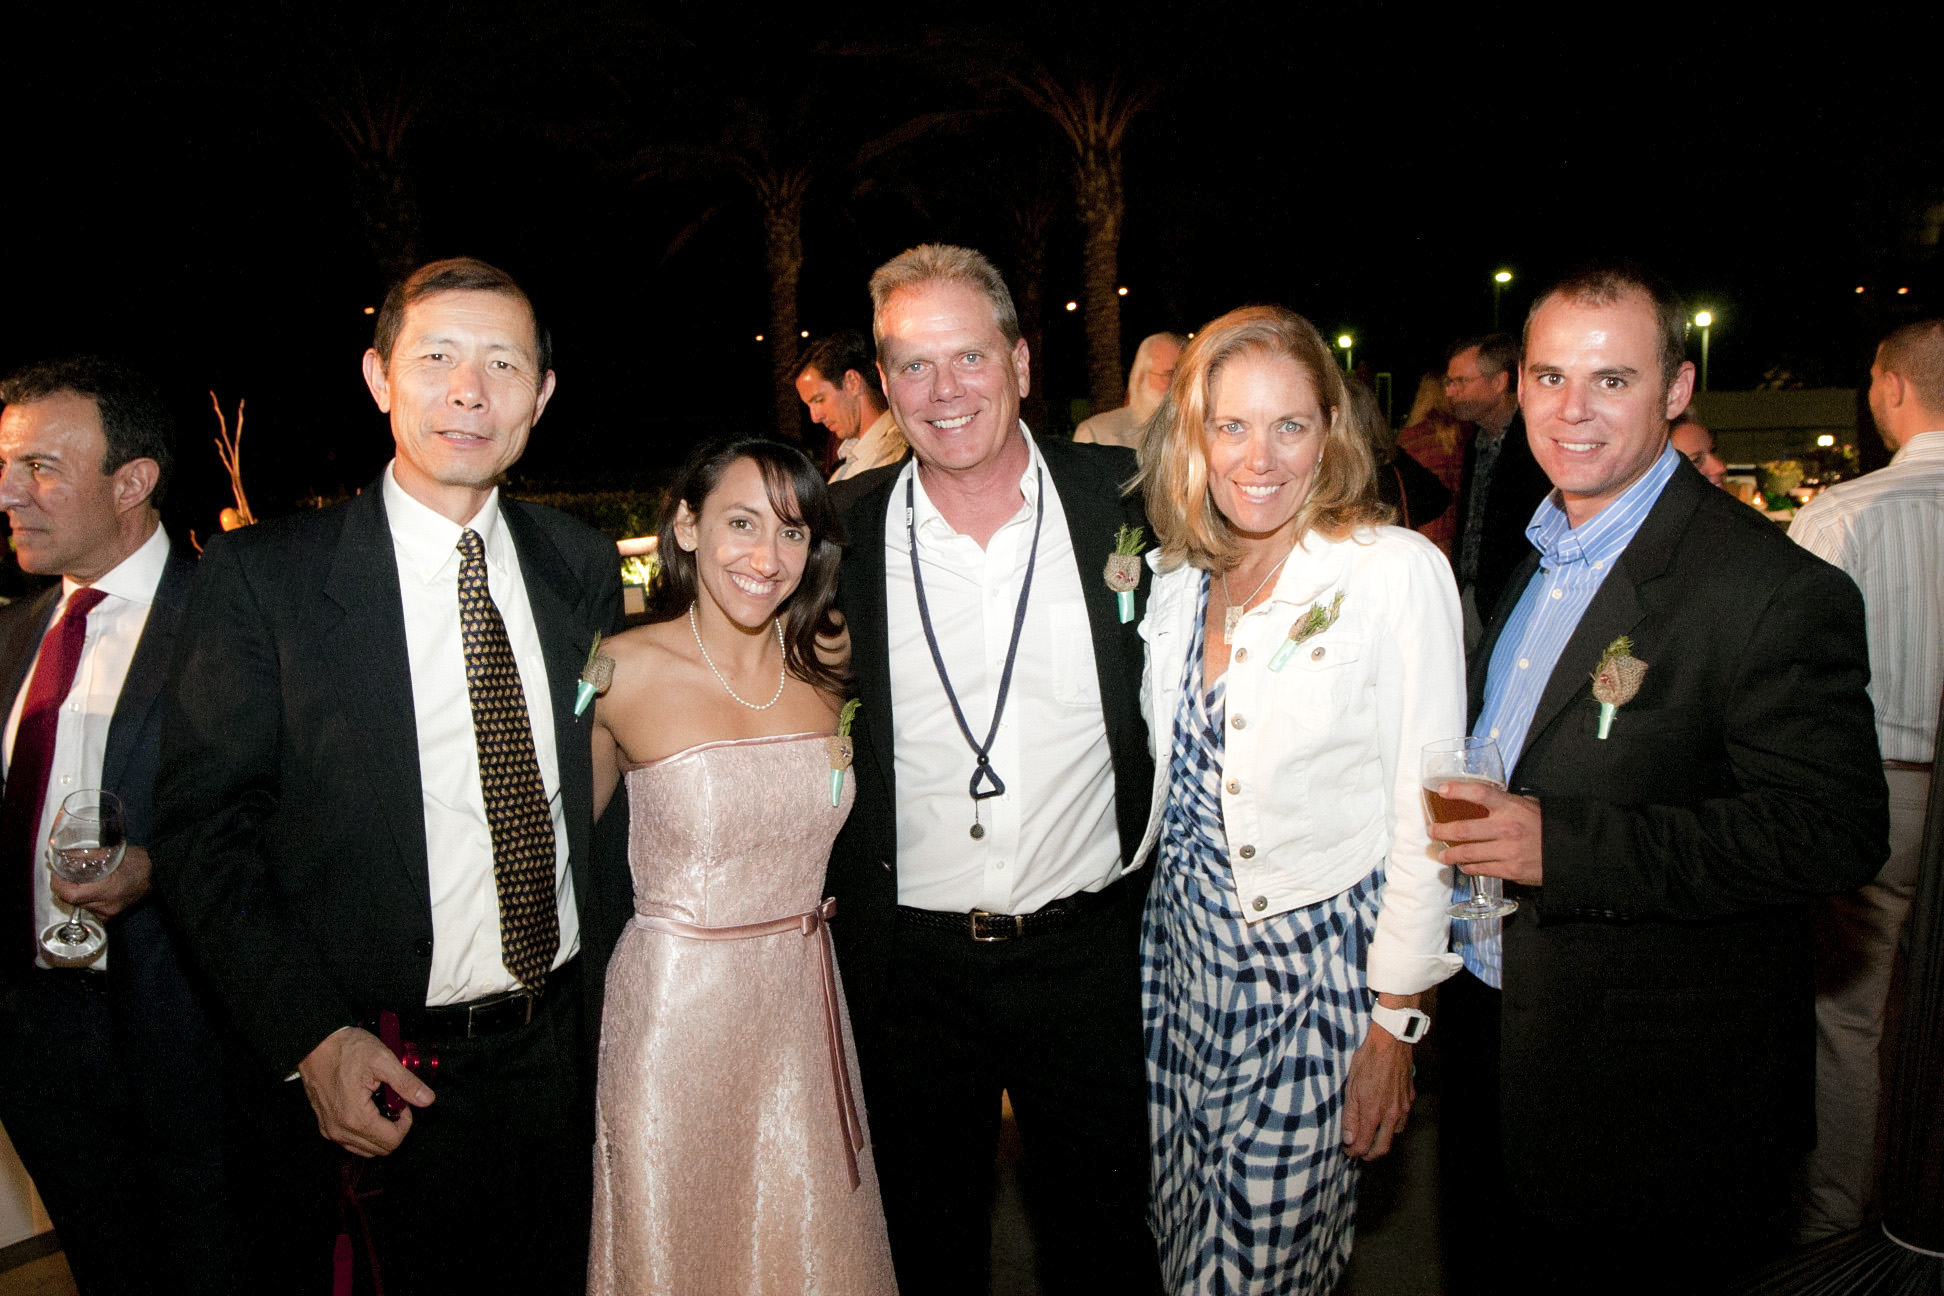 Guangyu Wang, Victoria Ippolito, Jack Topel, Heather George, Ivan Medel